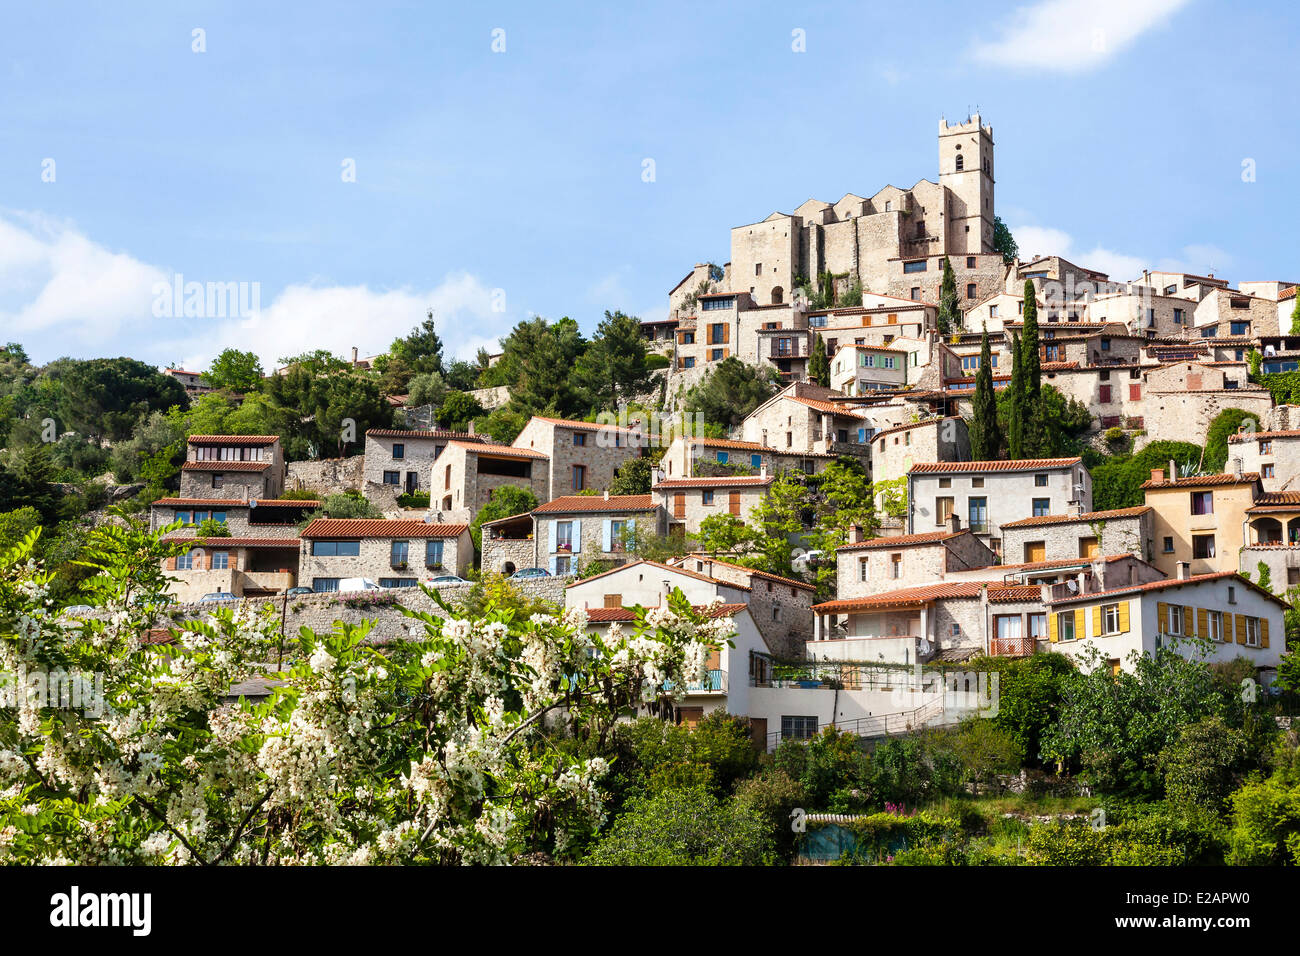 France, Pyrenees Orientales, Eus, labelled Les Plus Beaux Villages de France (The Most Beautiful Villages of France), - Stock Image